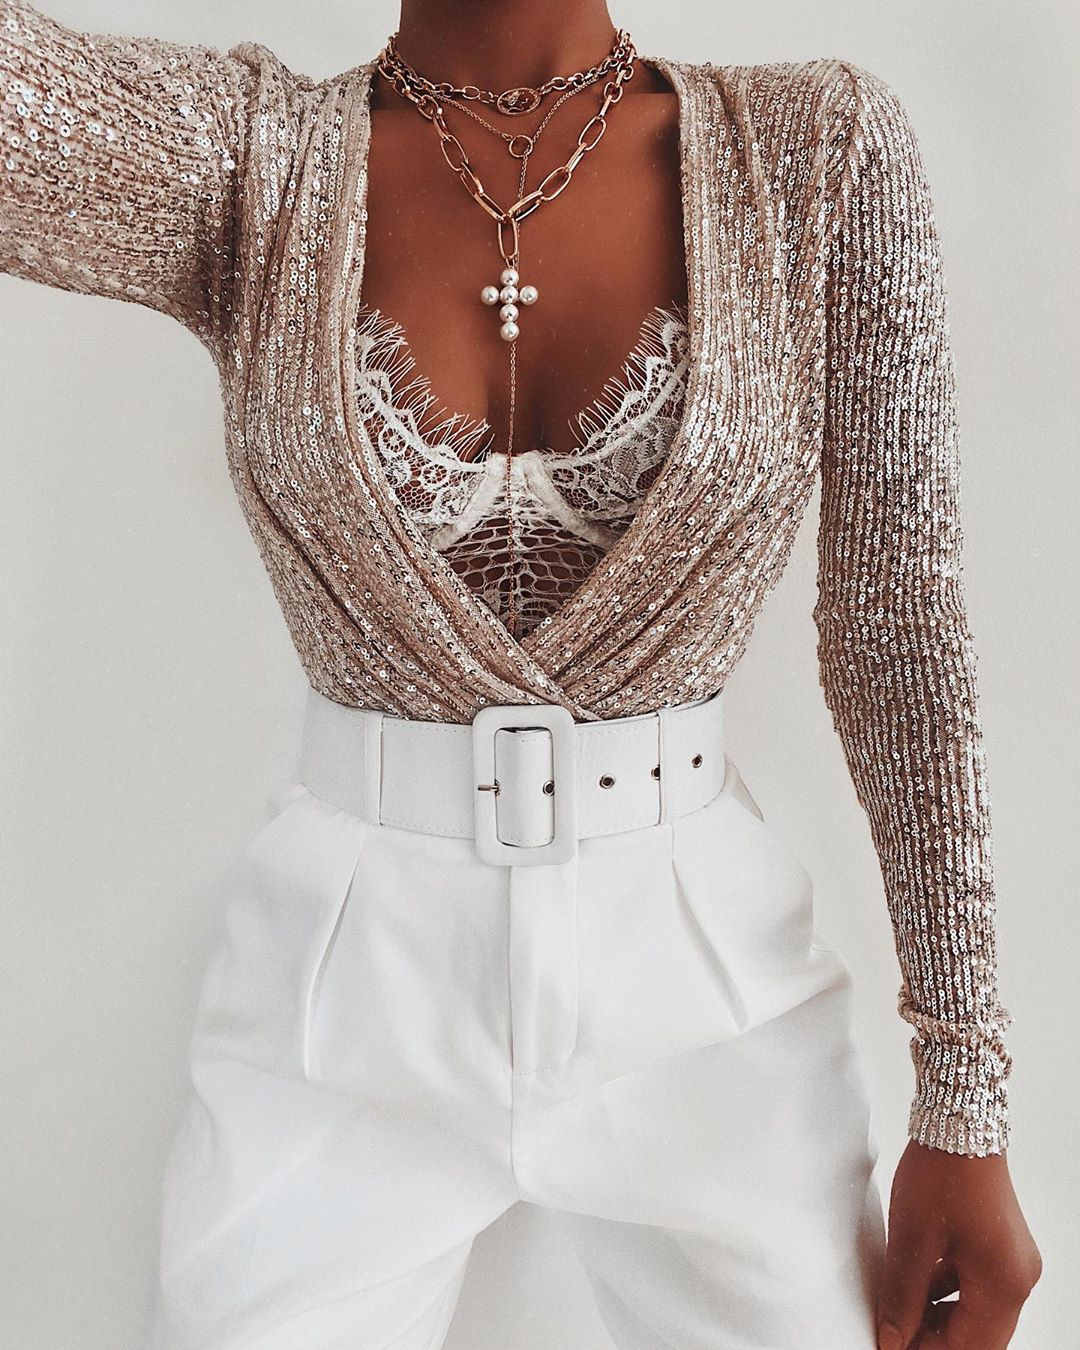 Another Way To Style This Stunning Bodys - Jewelry